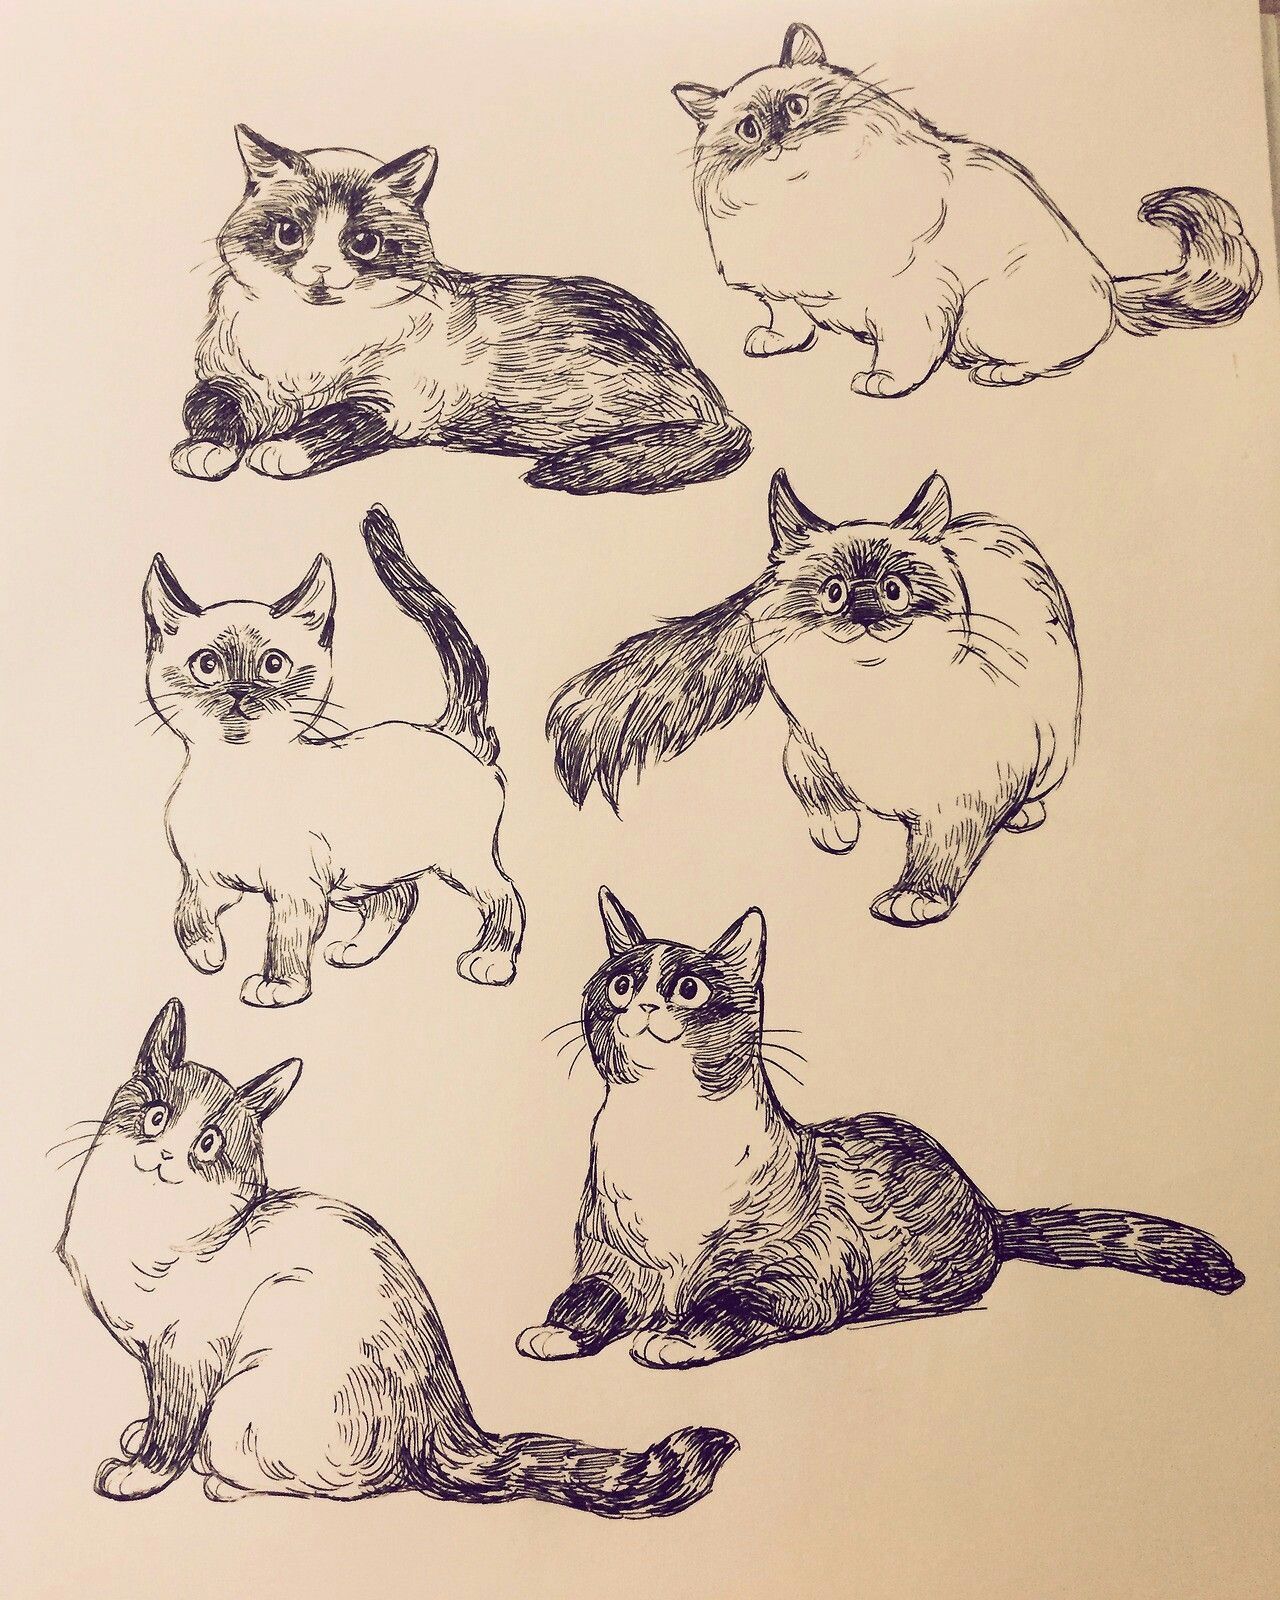 Pin By Pax On Sketch Animal Drawings Animal Sketches Cat Art